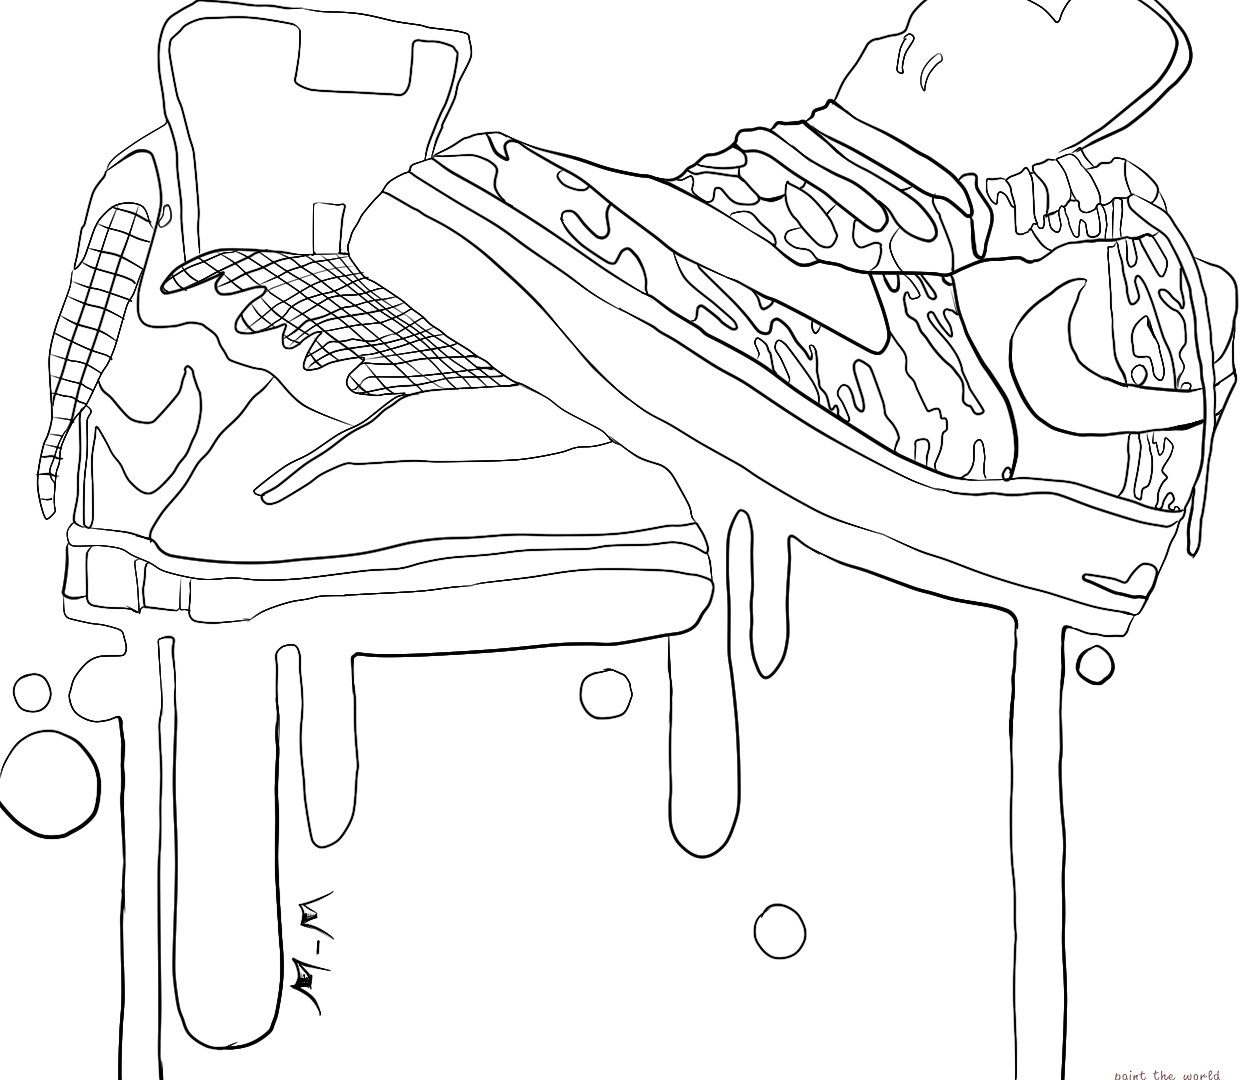 kd coloring pages kd shoes coloring pages at getcoloringscom free pages kd coloring